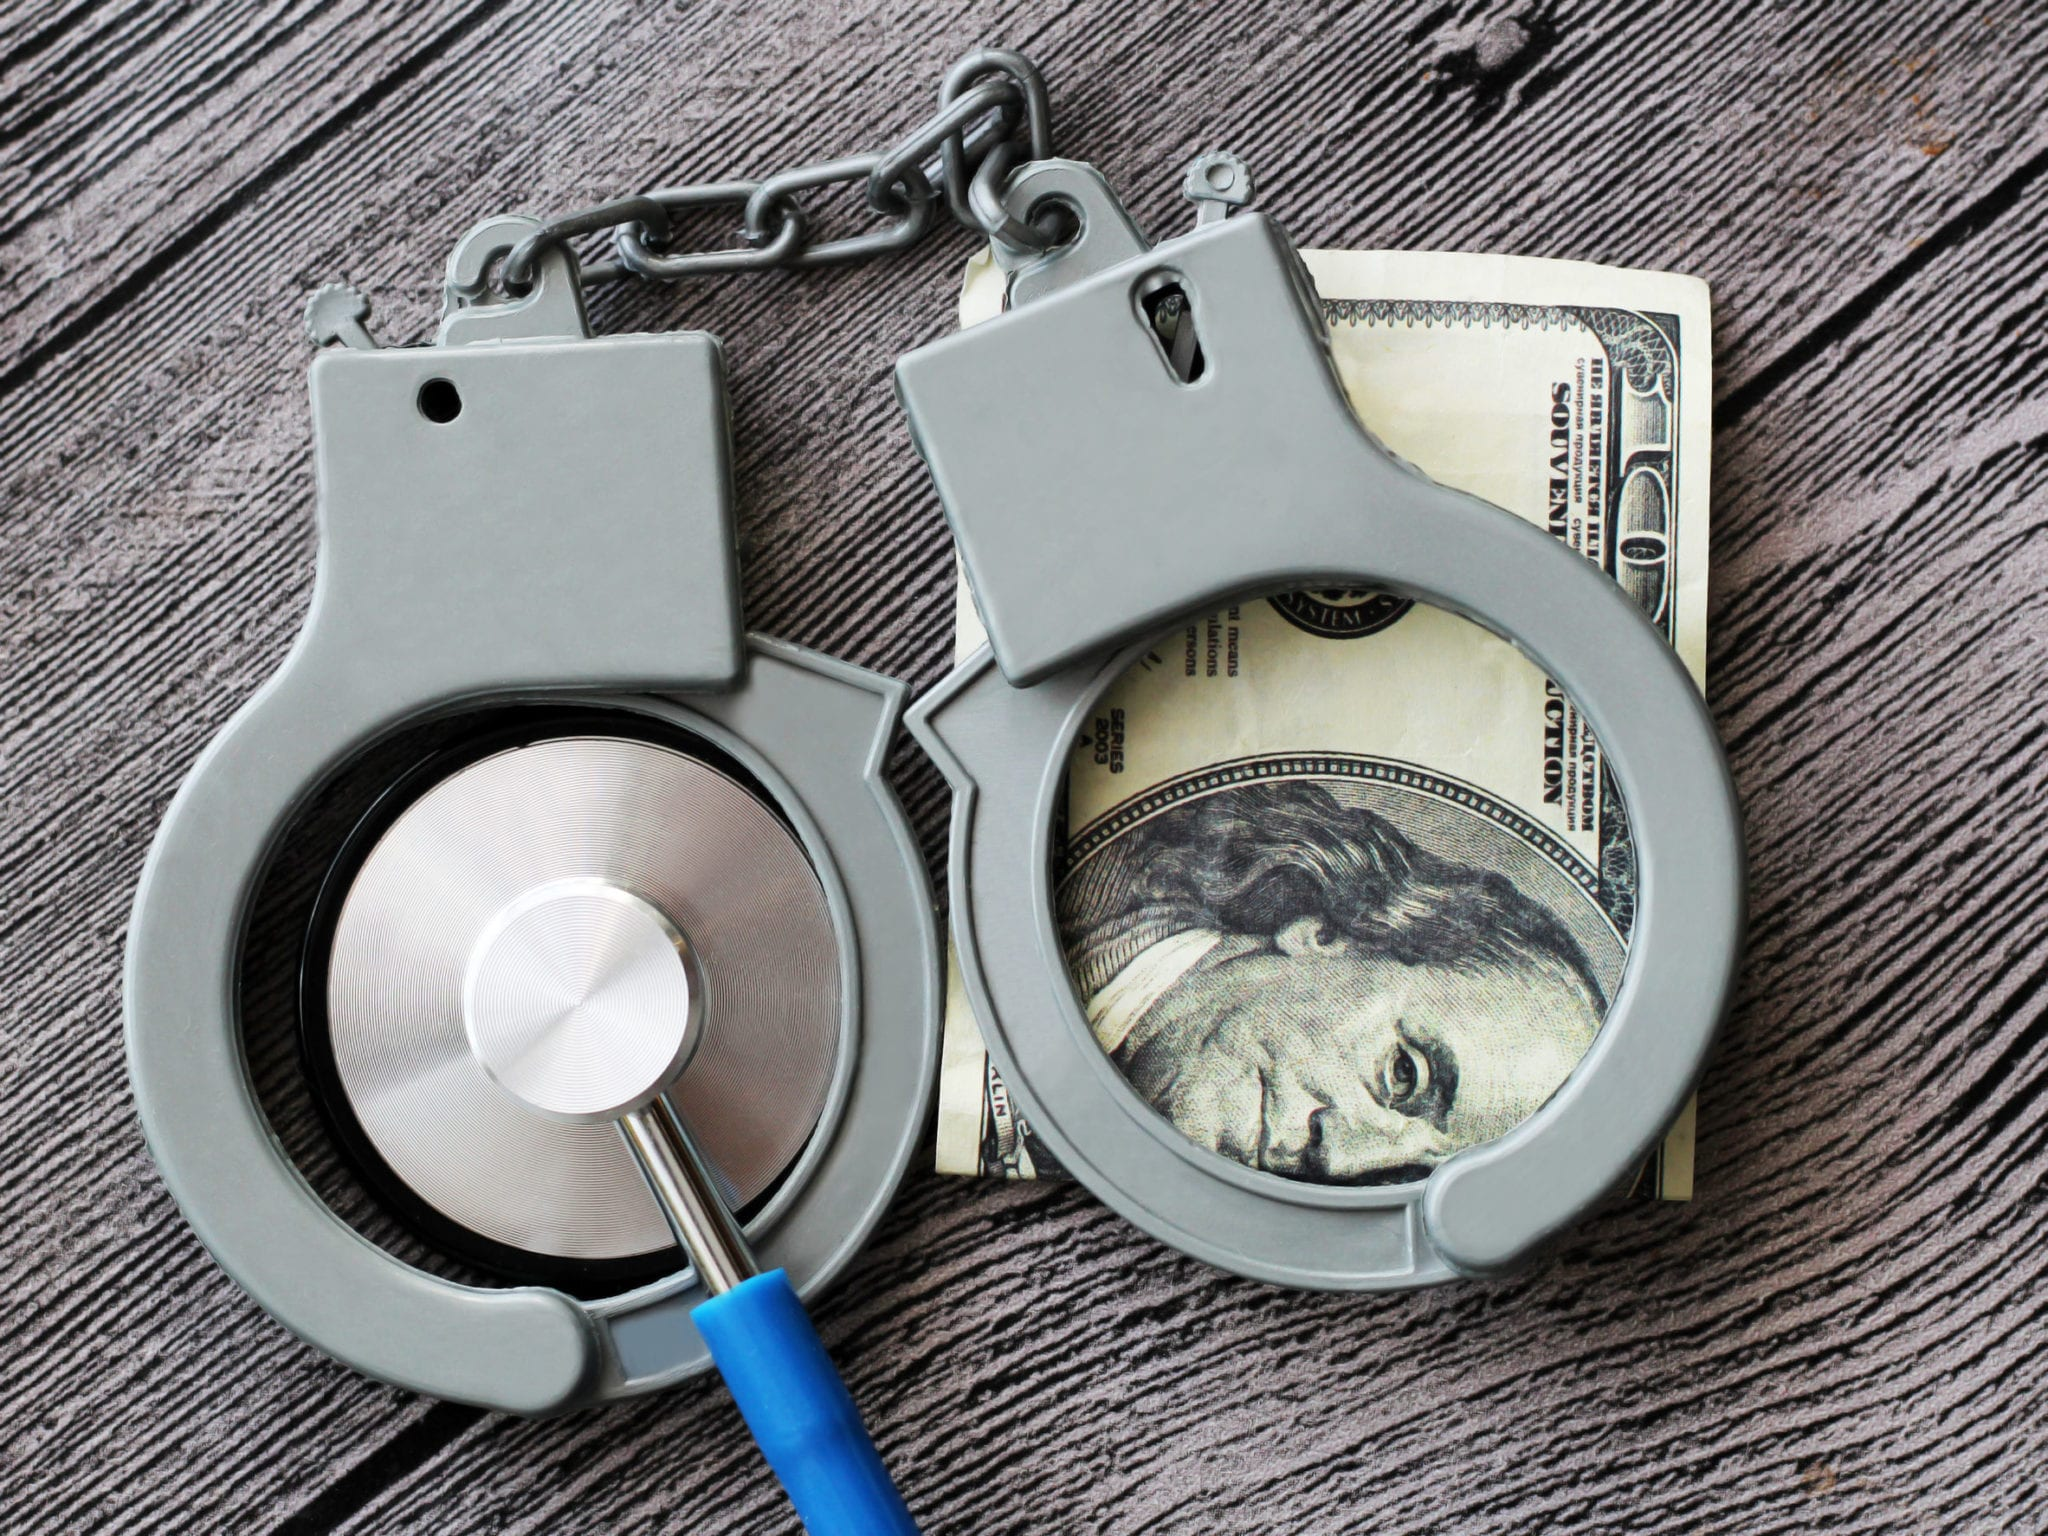 Texas Healthcare Fraud Charges and Penalties